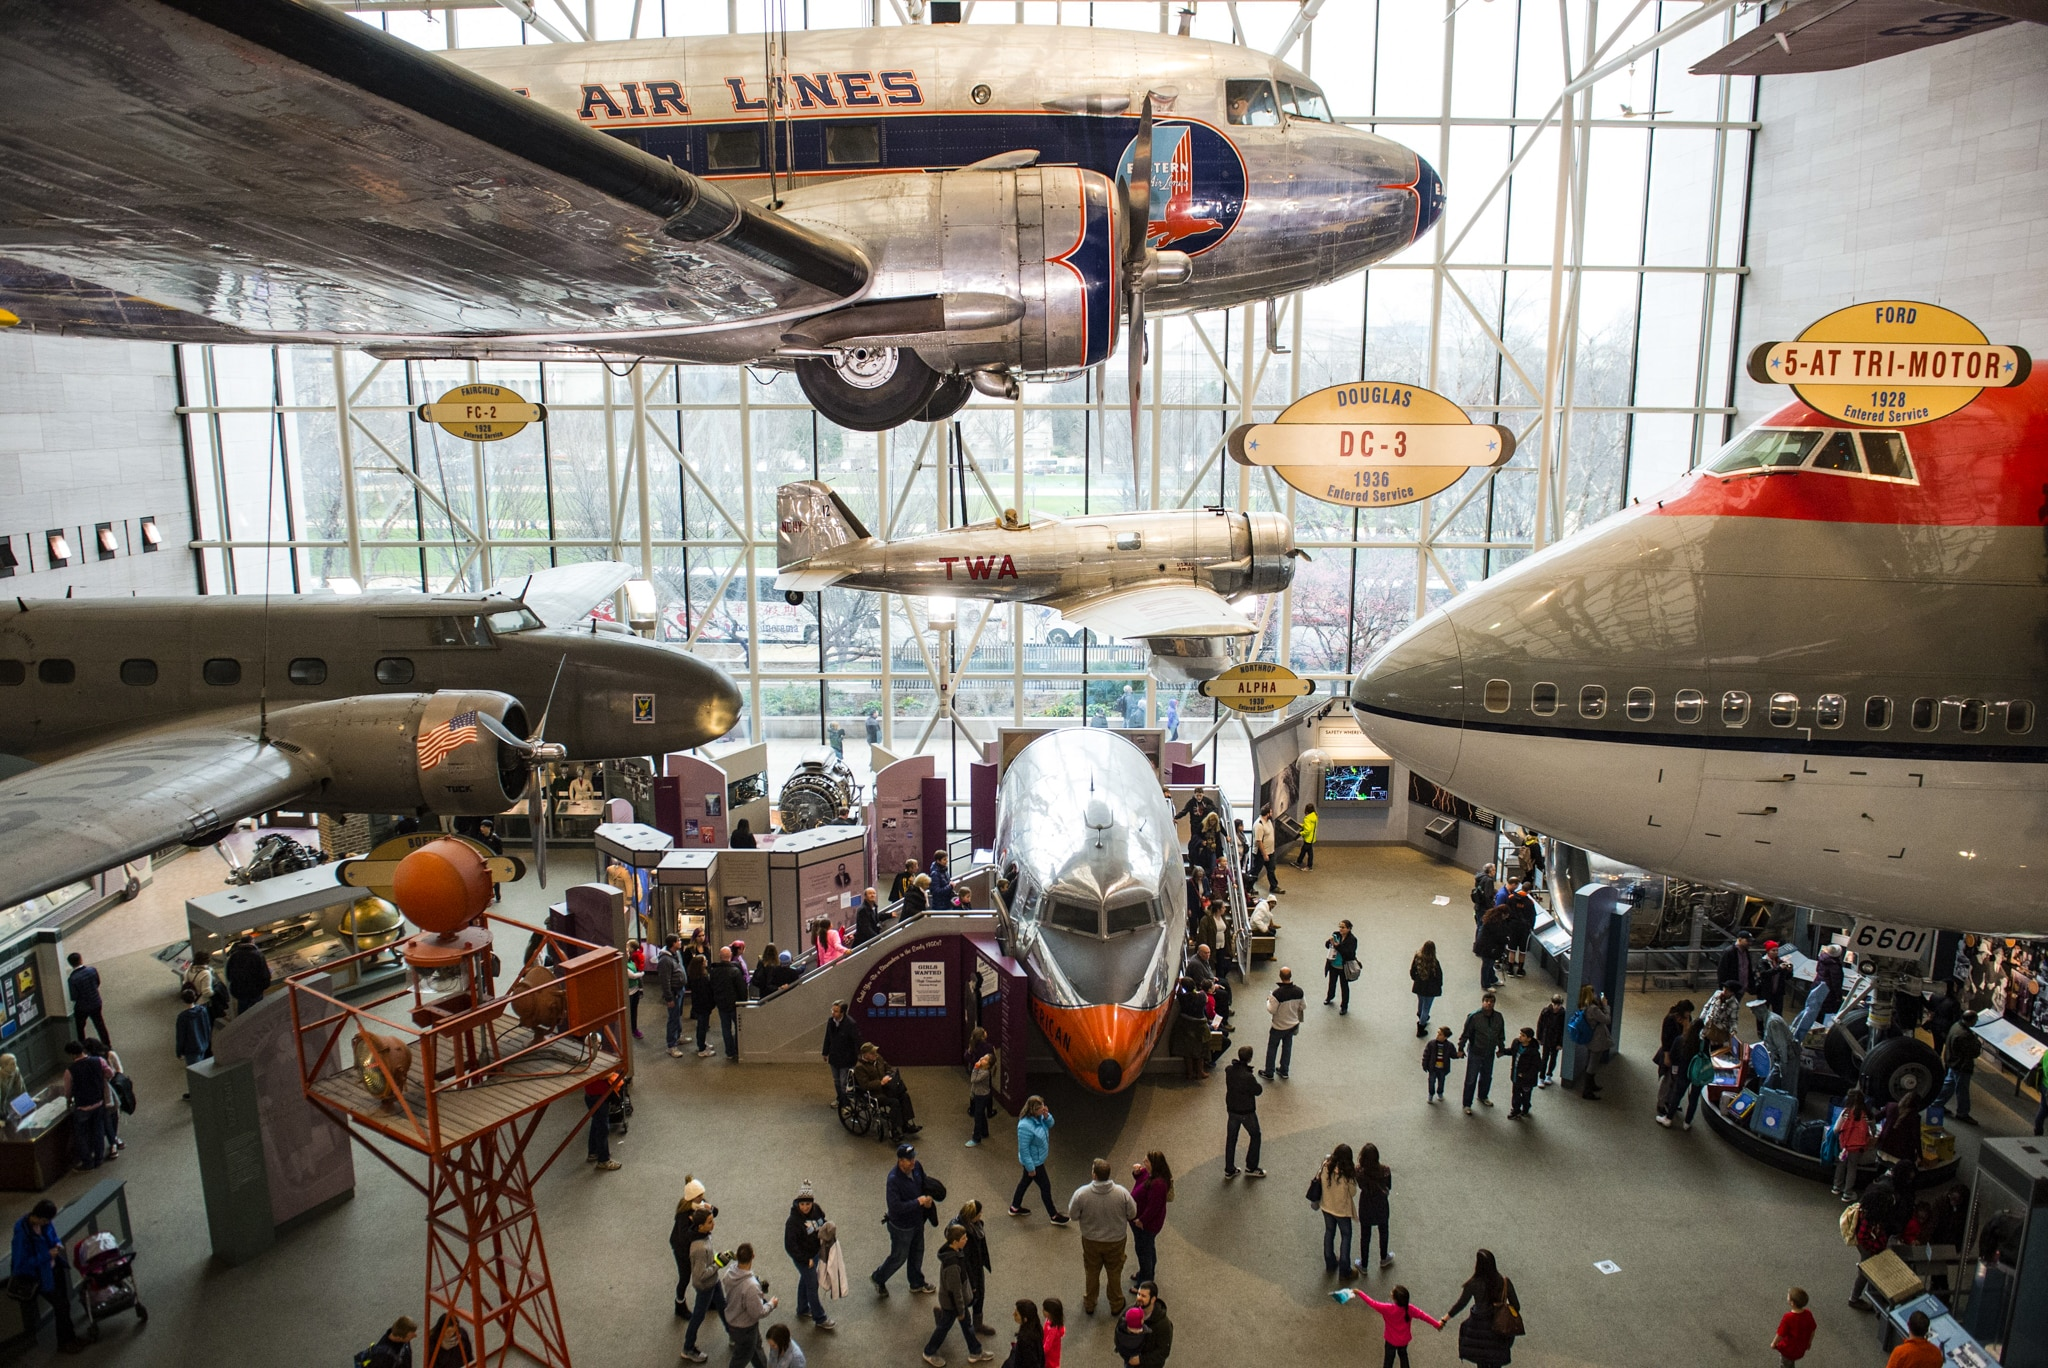 Airplanes on display in museum (© Saul Loeb/AFP/Getty Images)